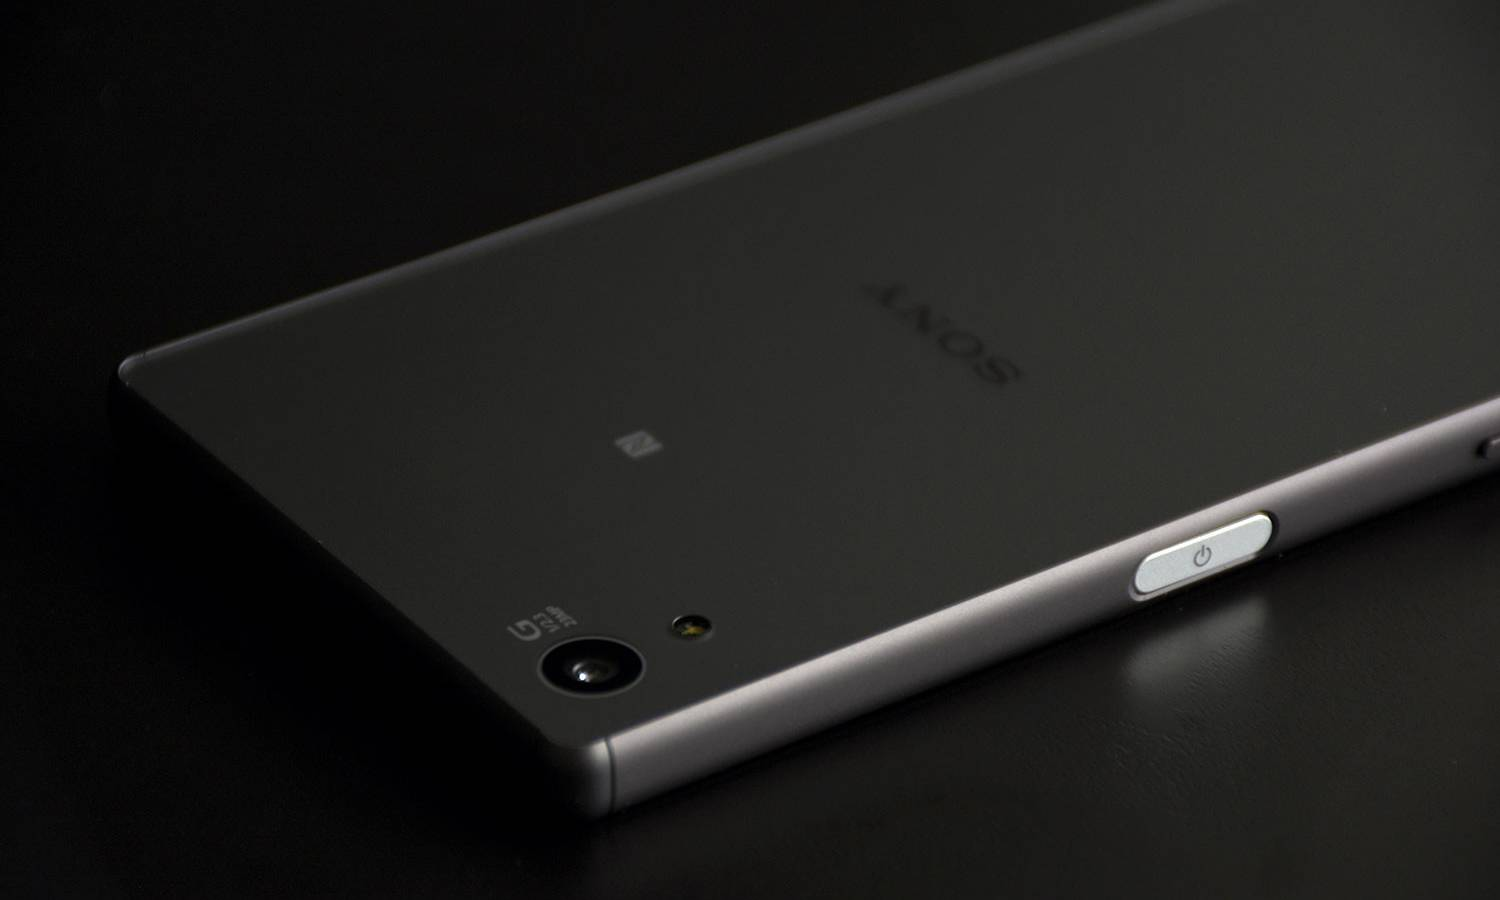 Sony restarts Android Nougat rollout for Xperia Z5, Z3 Plus